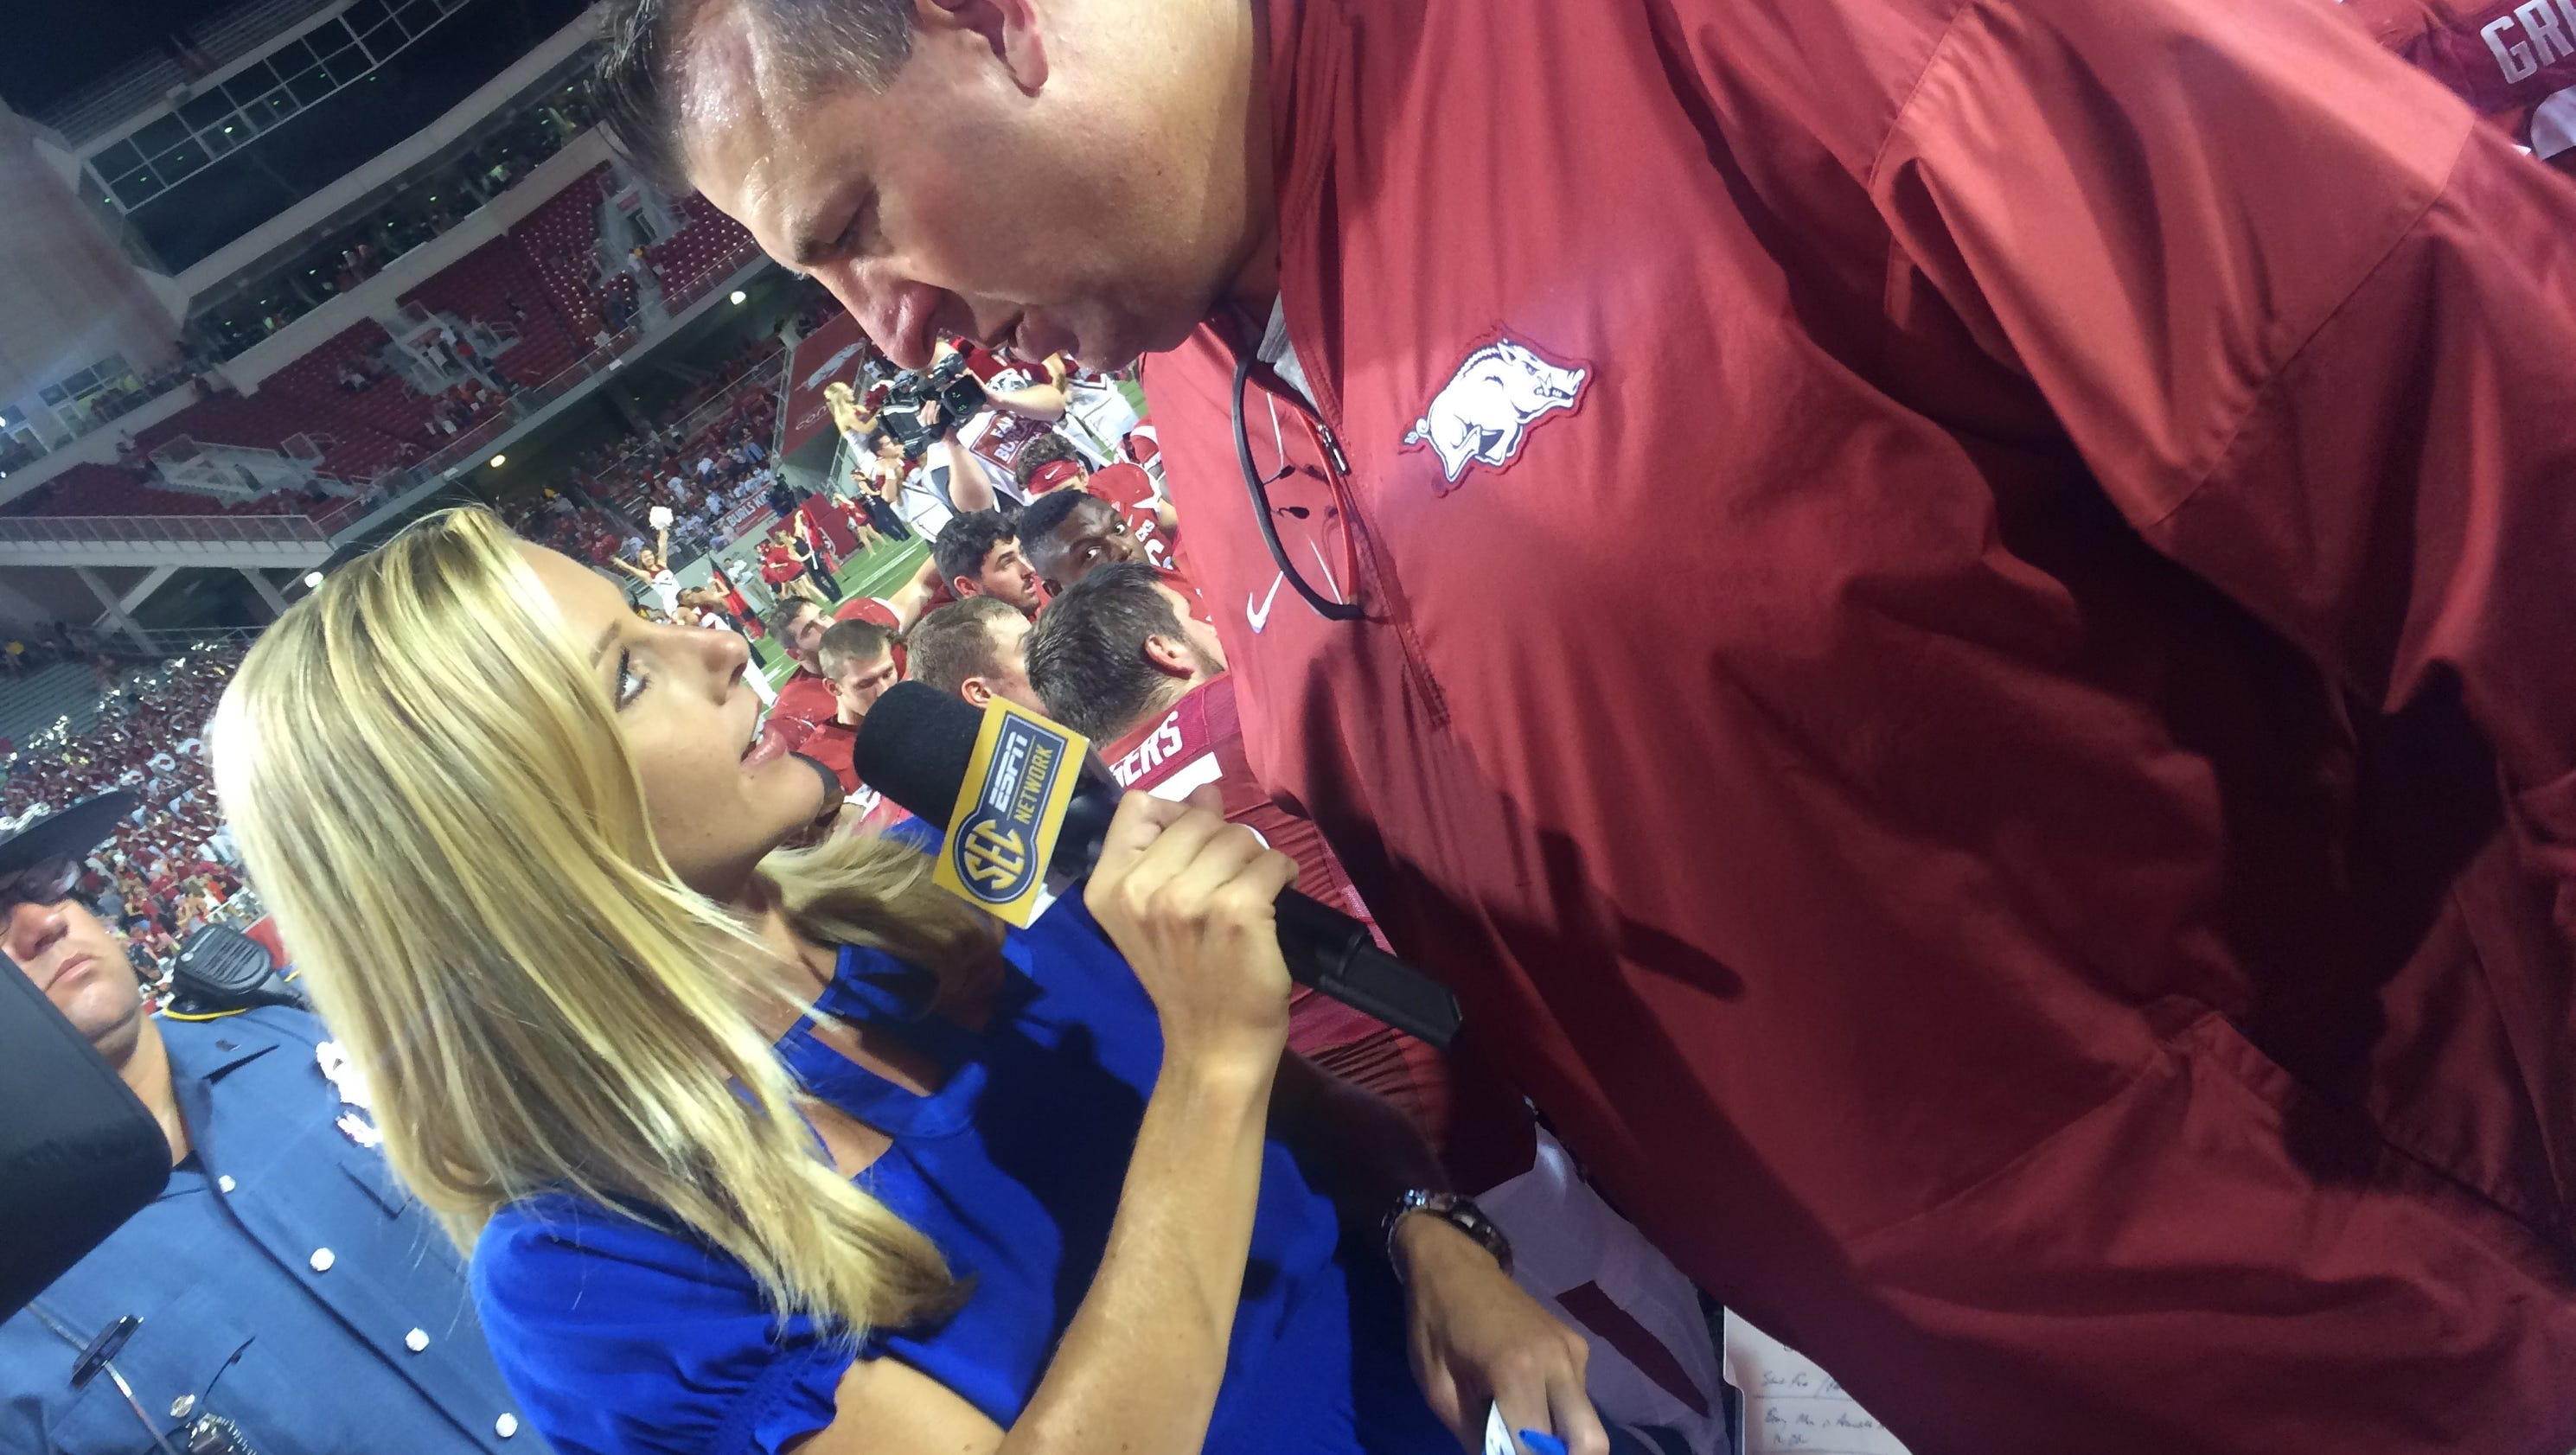 dawn davenport, wkrn morning anchor, joins sec network, 104.5 the zone